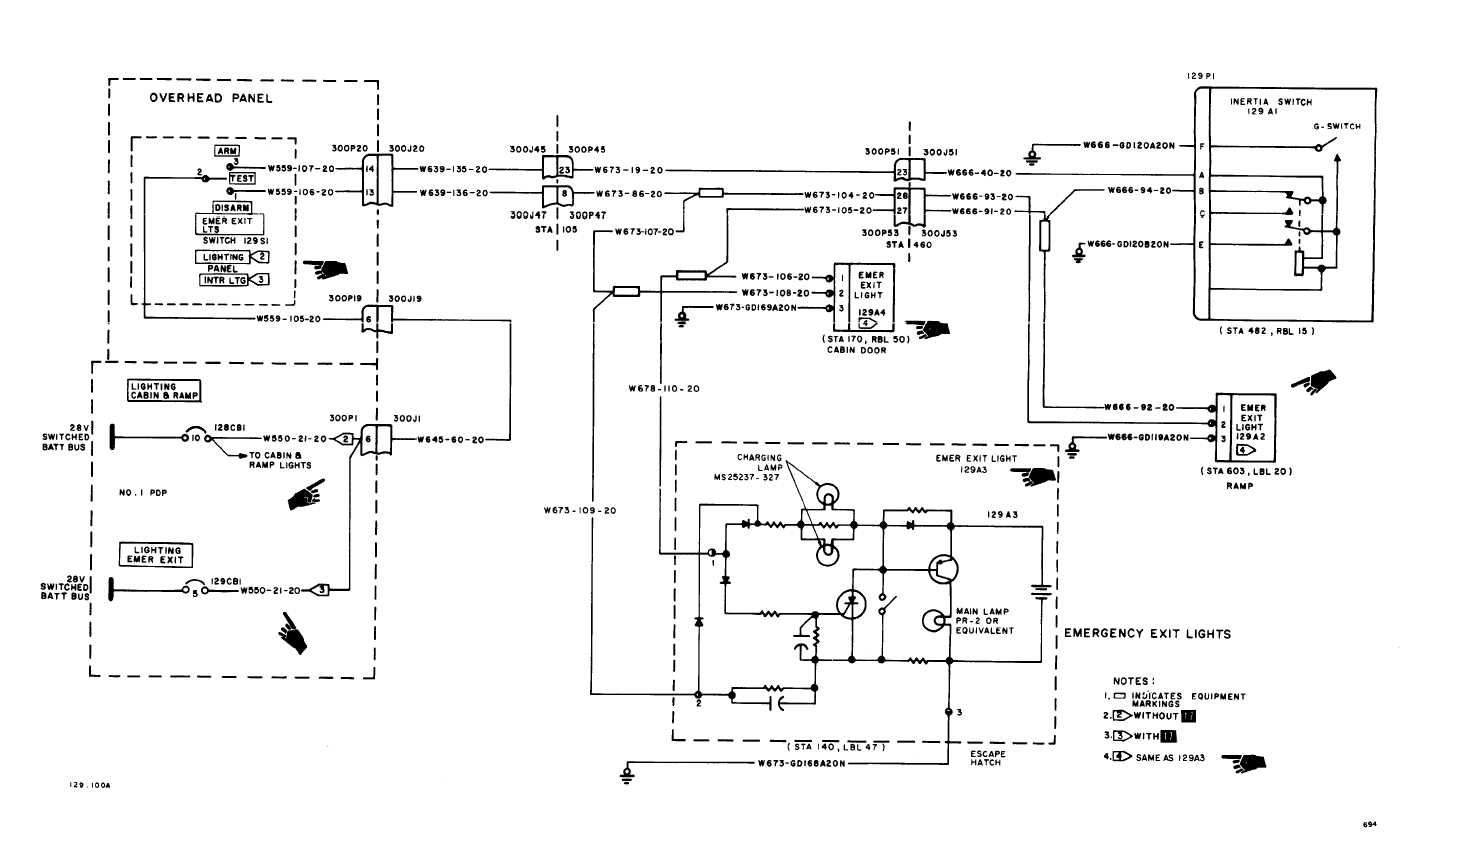 emergency exit sign wiring diagram Download-emergency exit sign wiring diagram Download Emergency Exit Lights Wiring Diagram In Lighting To Light DOWNLOAD Wiring Diagram 10-m